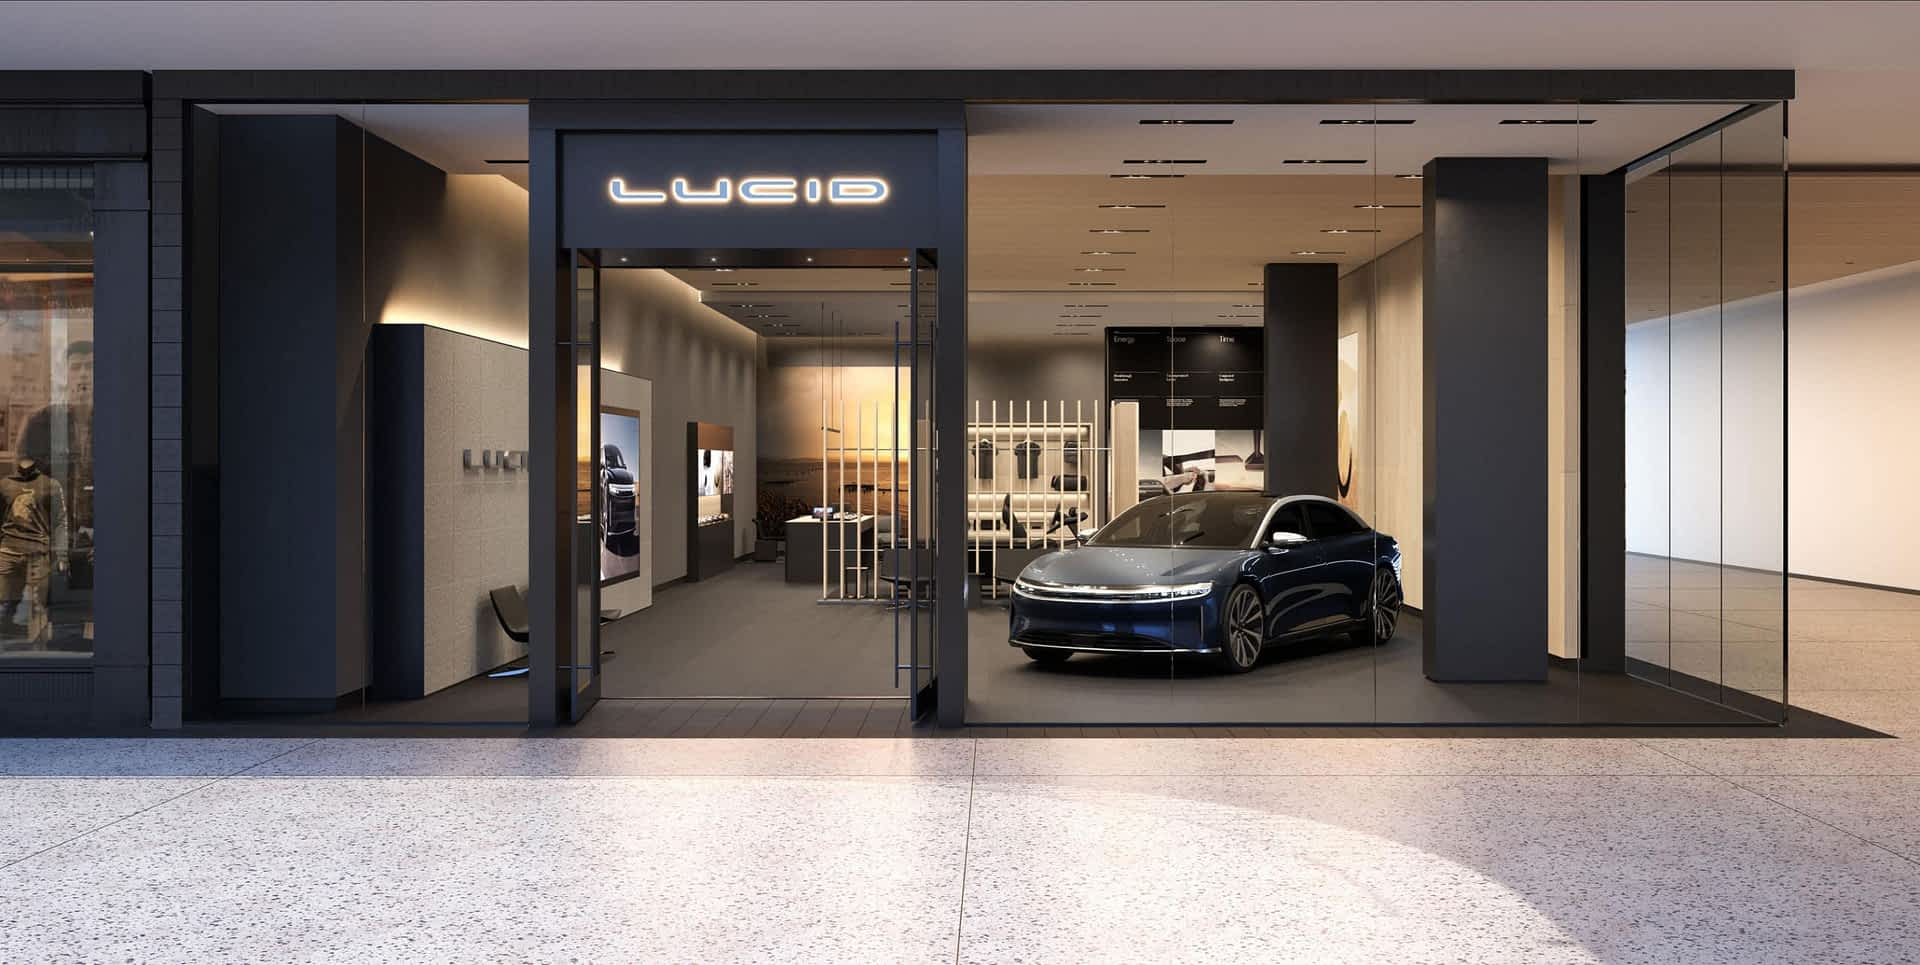 Lucid Motors Expands California Studios with New Locations in Century City and San Jose